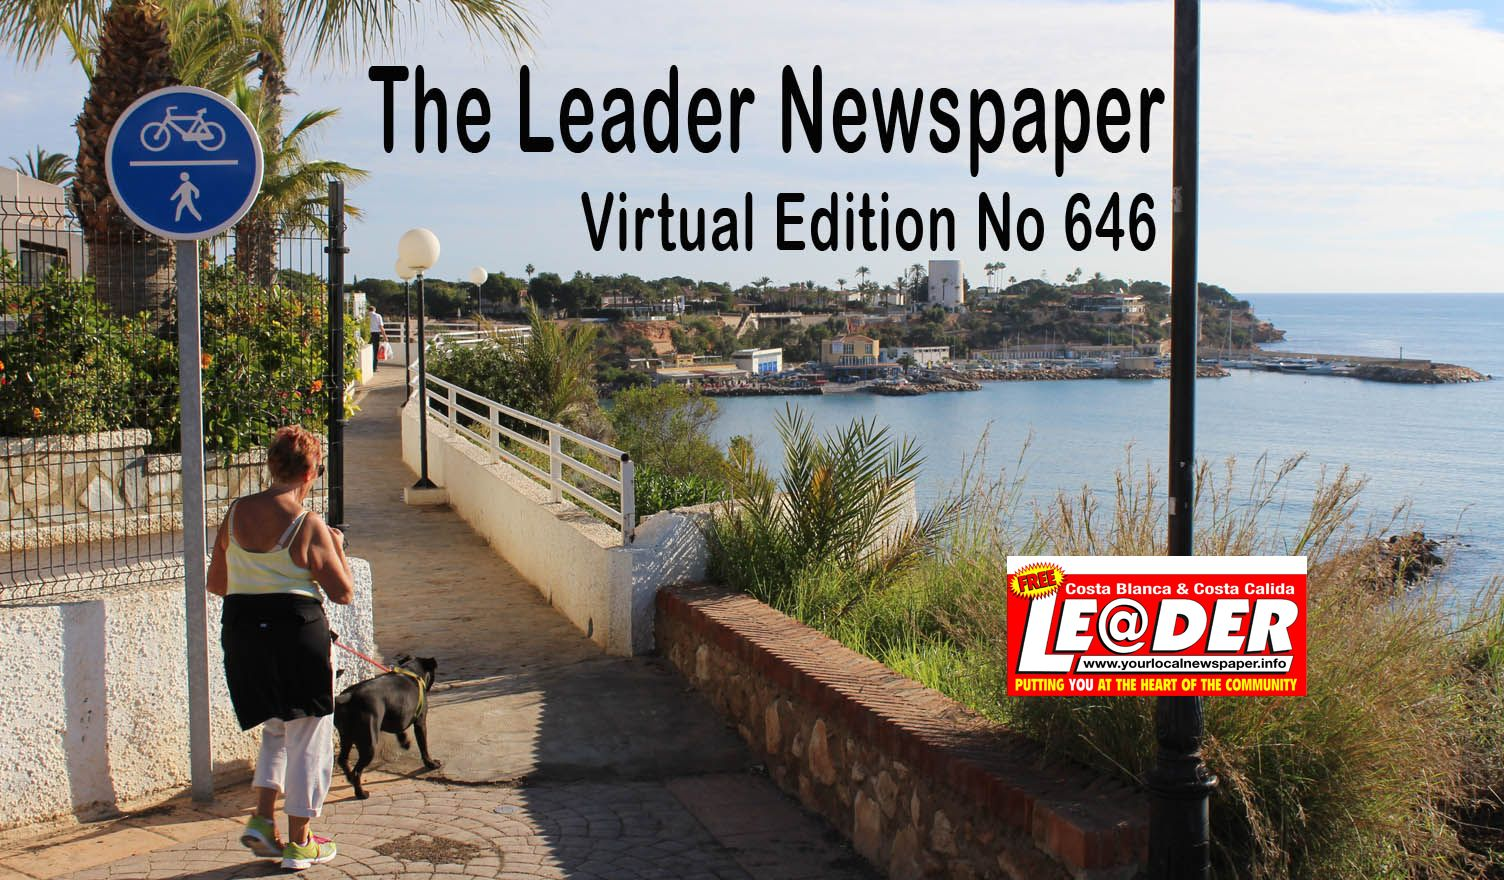 VIRTUAL EDITION OF THE LEADER NEWSPAPER - http://www.theleader.info/2016/12/04/virtual-edition-leader-newspaper/